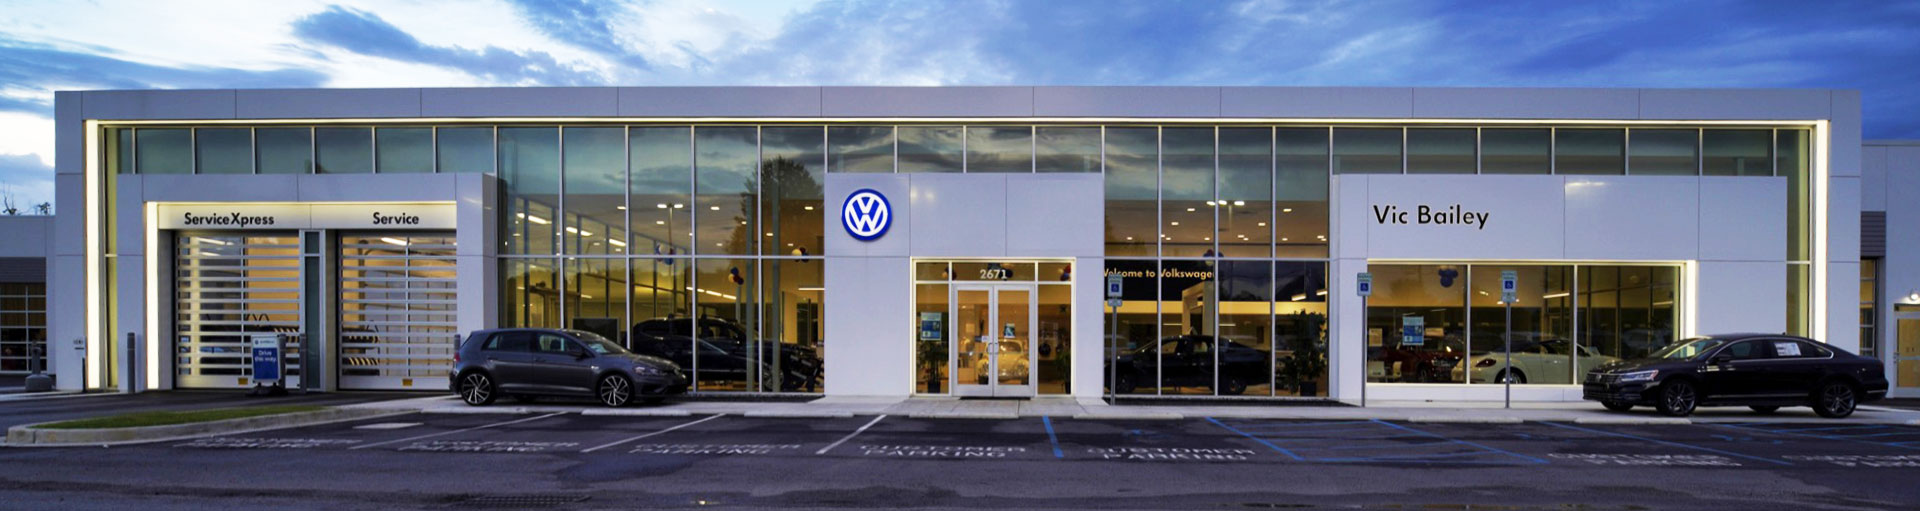 Vic Bailey Volkswagen Service and Parts Special Coupons